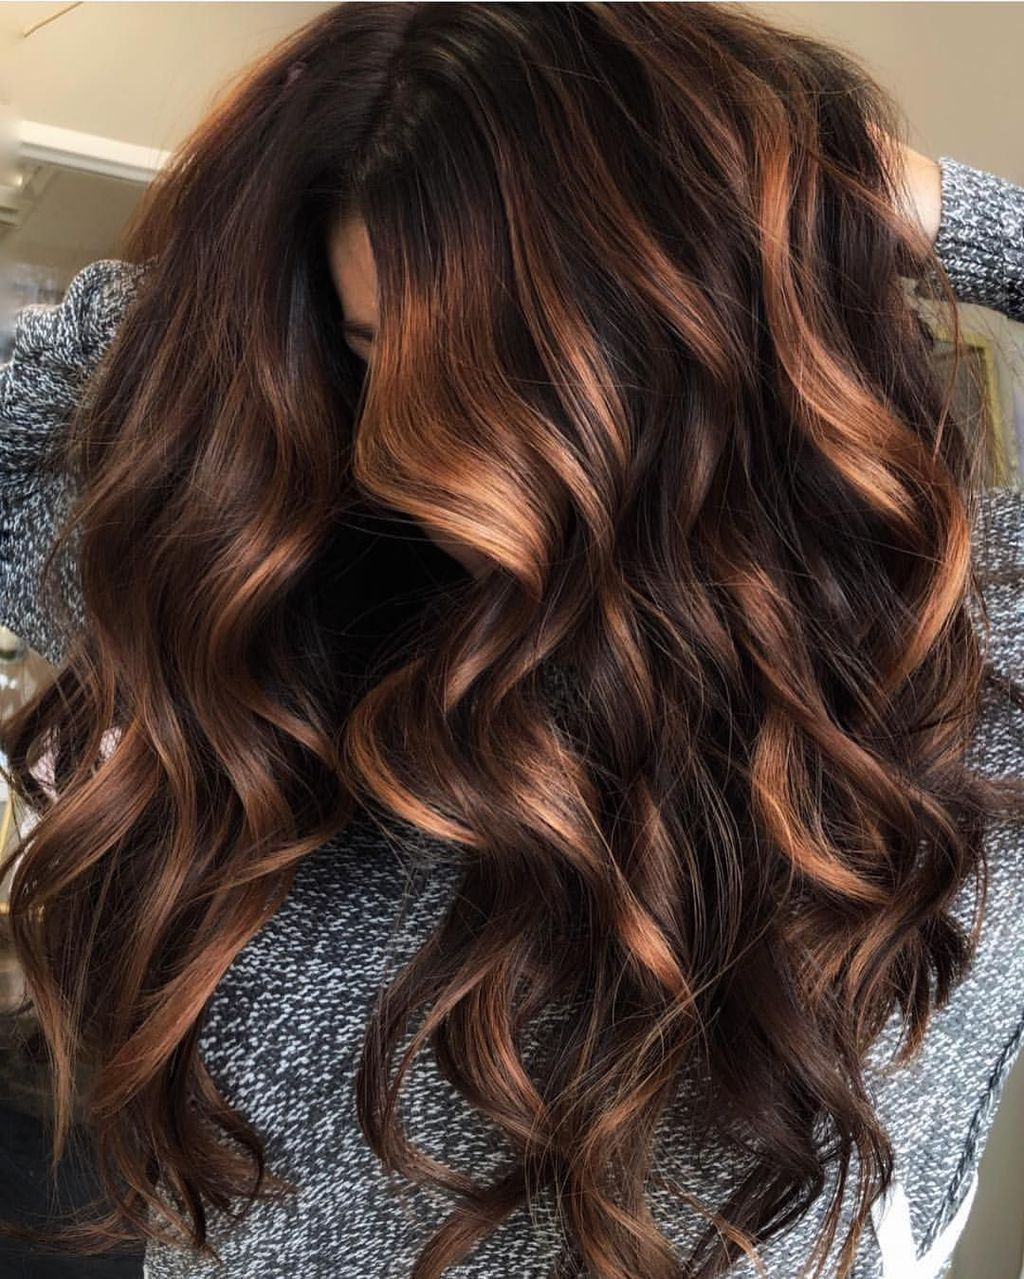 40 Beautiful Summer Hair Color Ideas For Brunettes Hair Styles Summer Hair Color Brunette Hair Color